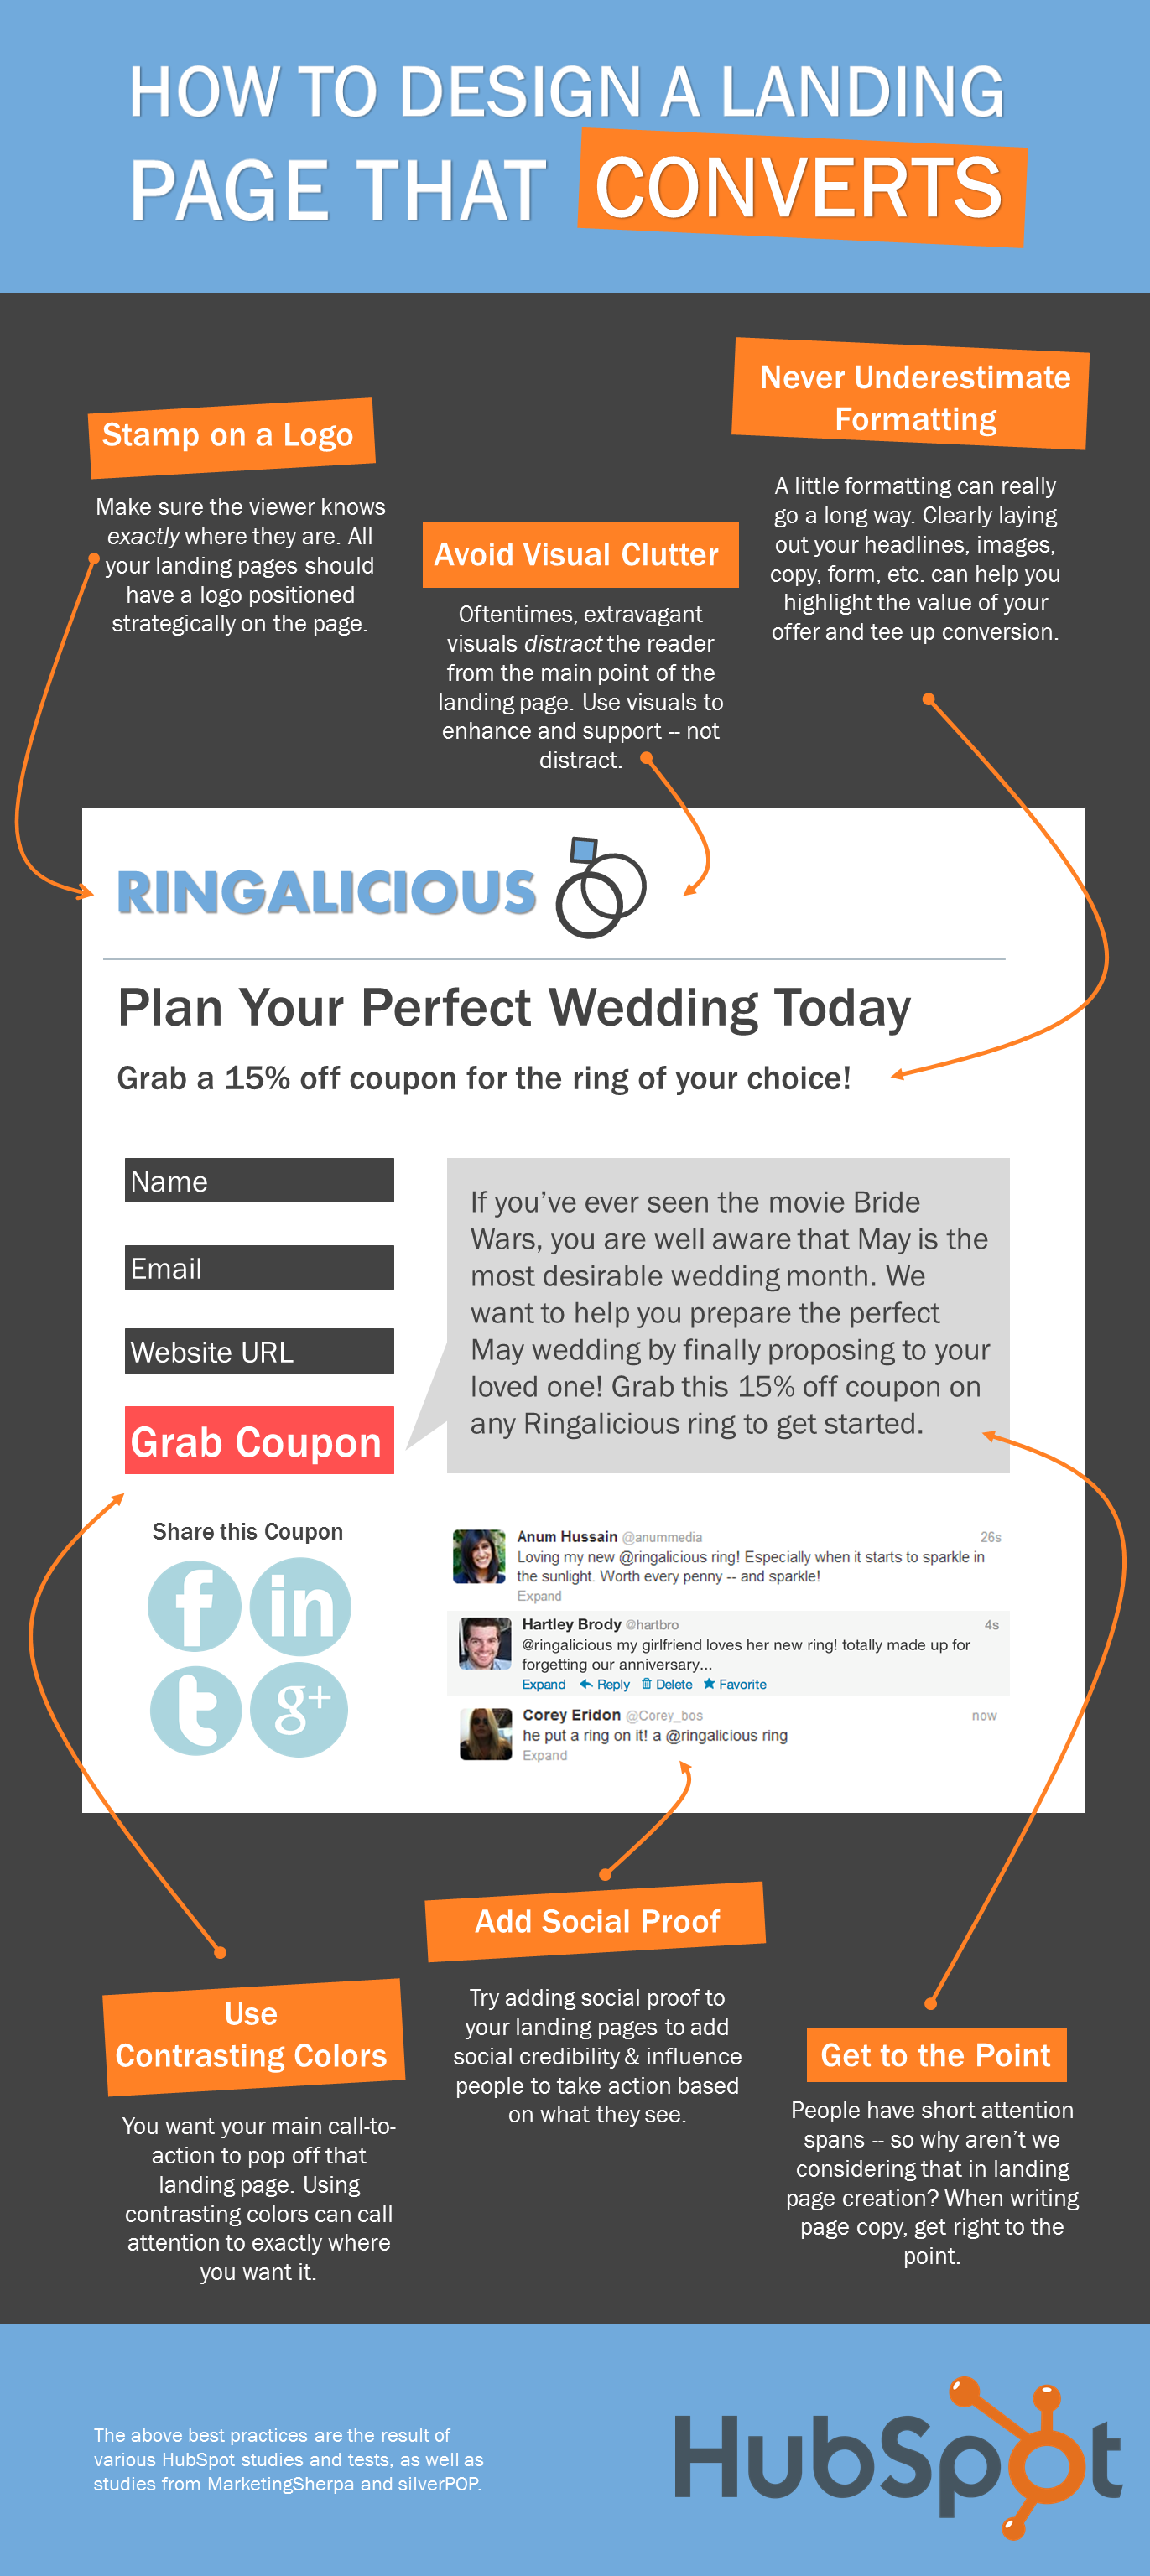 7 Key Design Tips for High-Converting Landing Pages